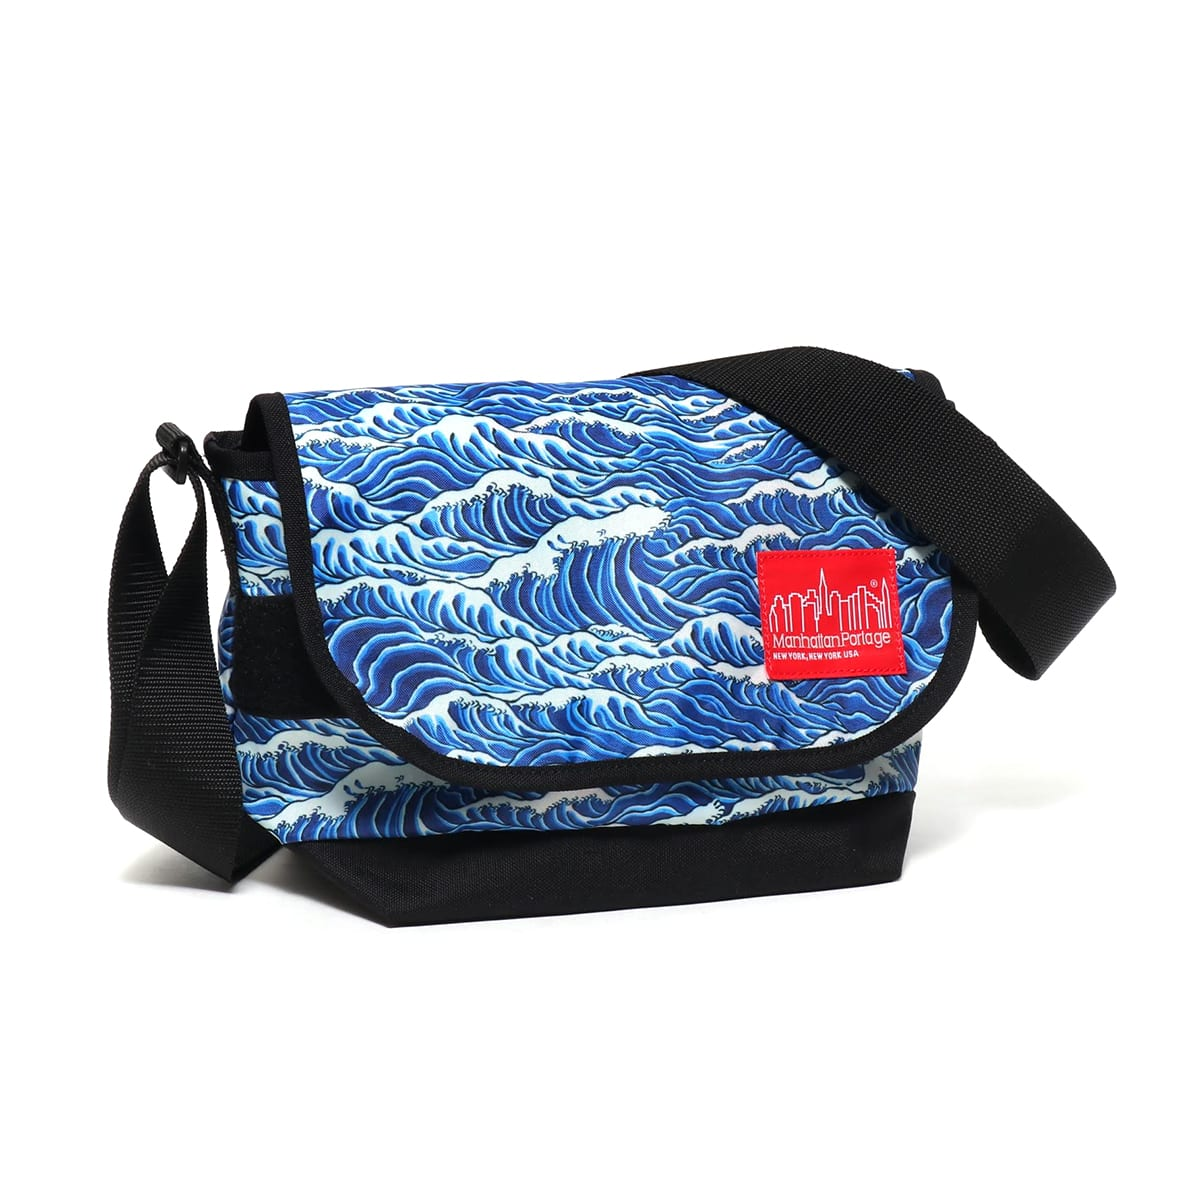 ATMOS LAB Manhattan Portage x T.T.T. x ATMOS LAB Messenger Bag  BLACK_photo_large